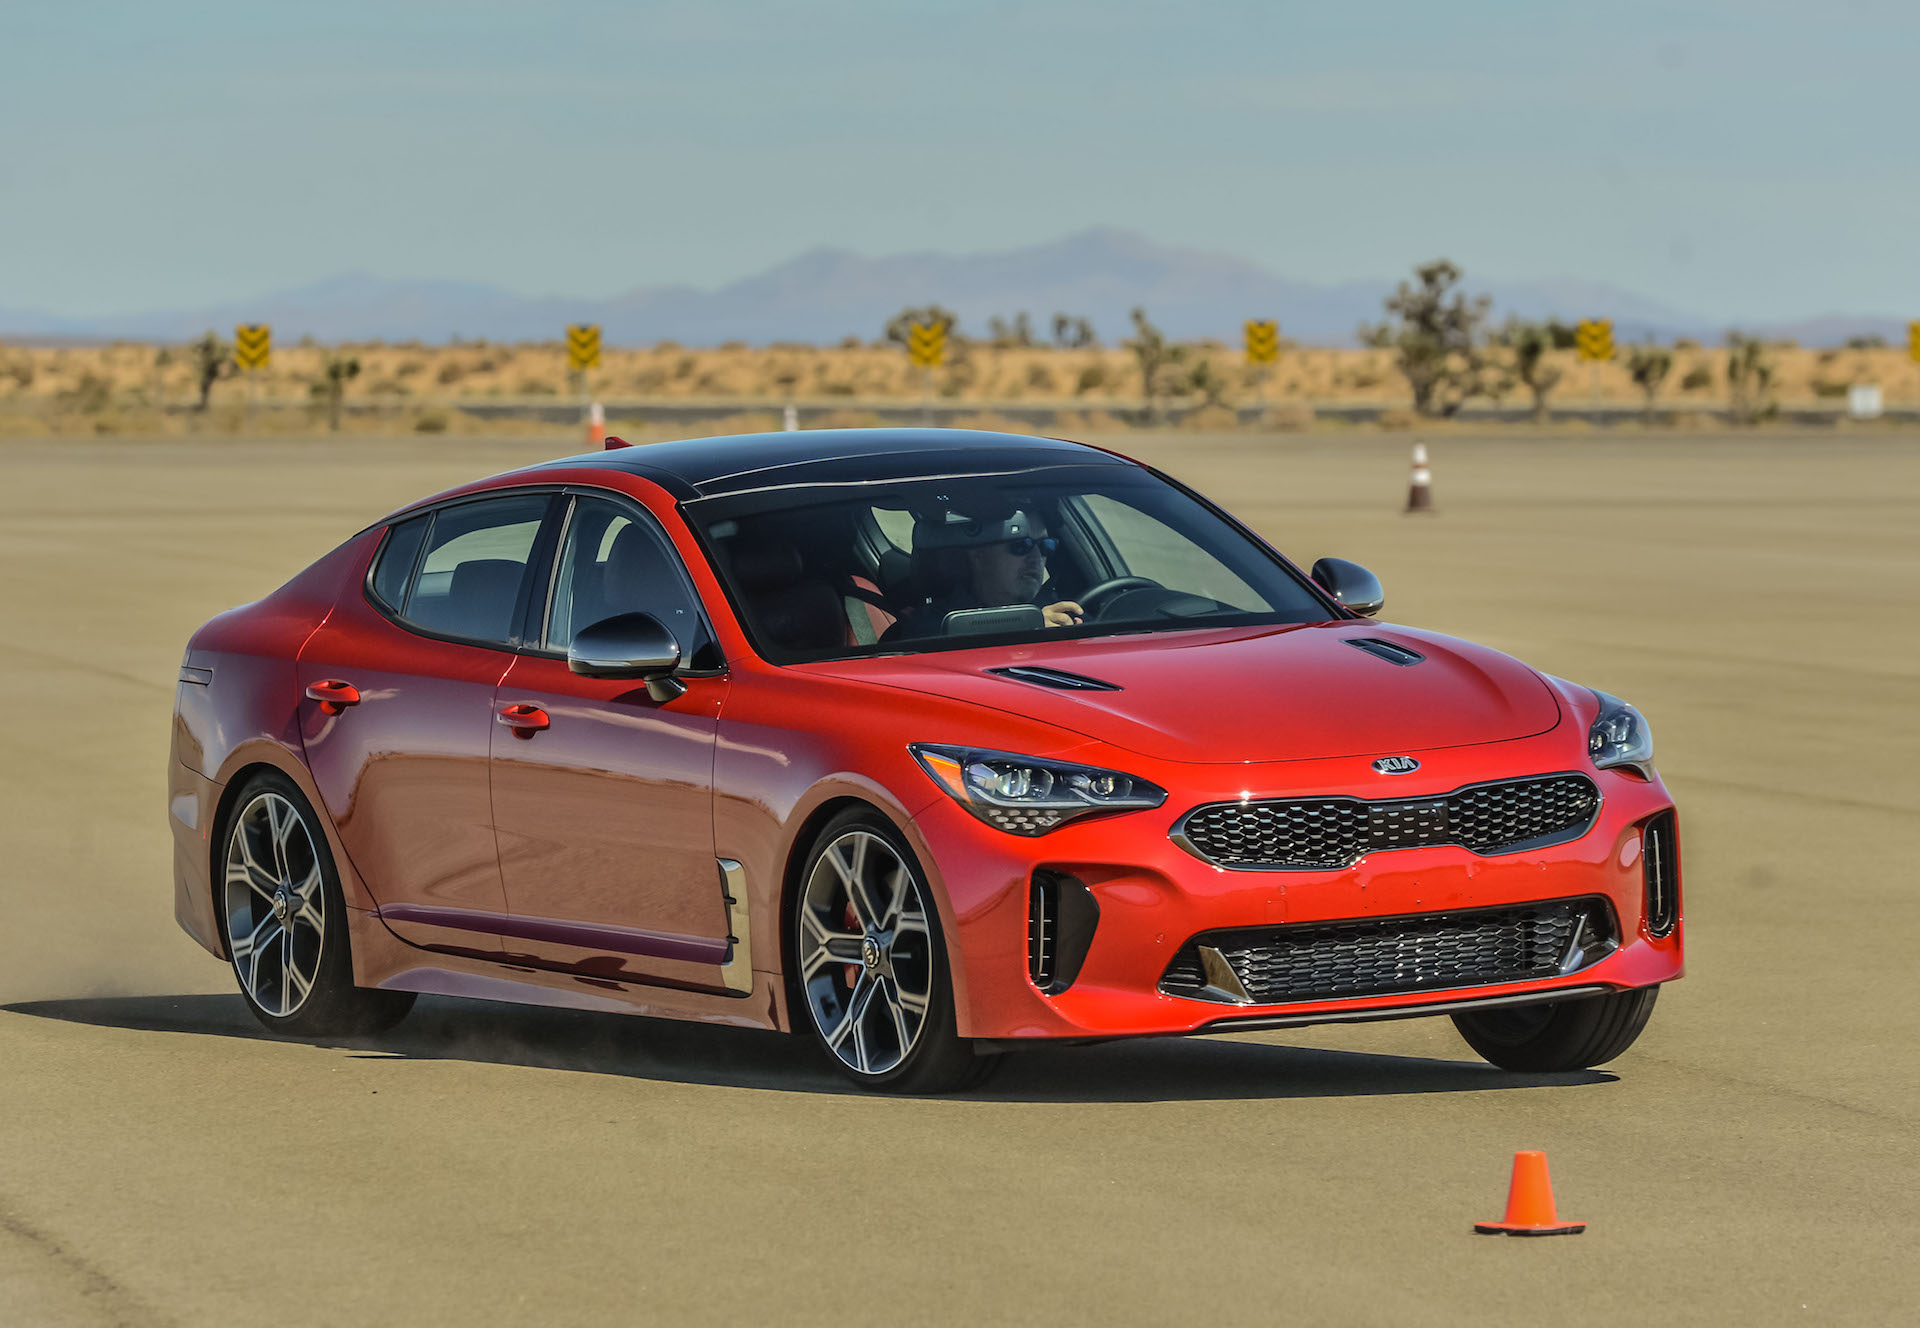 2018 Kia Stinger First Drive Review An Upscale Sporty